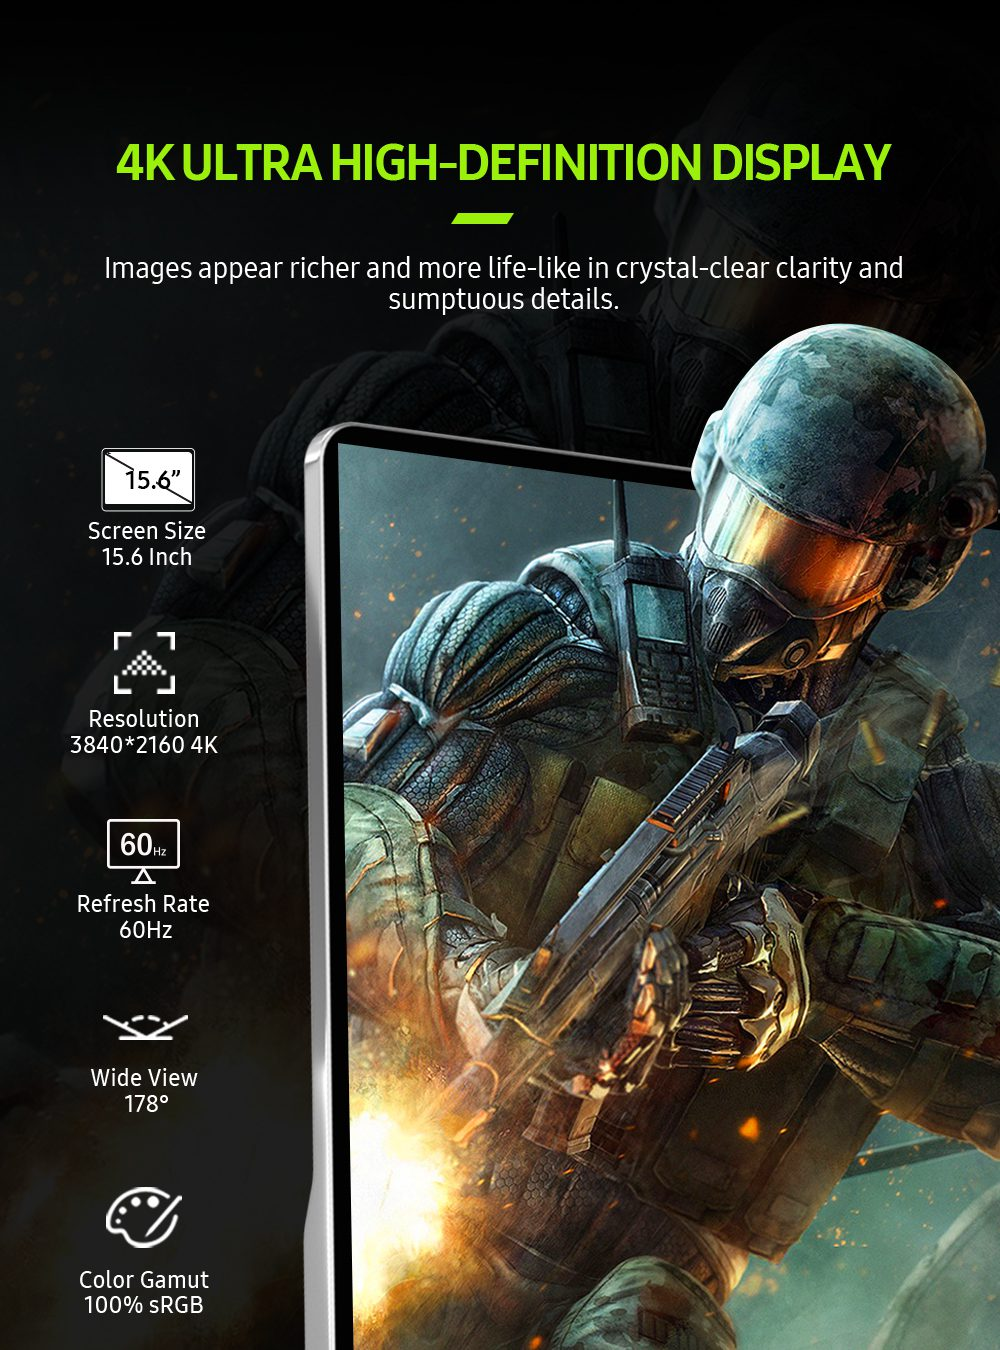 UPERFECT 15.6 4K USB 3.1 Type-C  Screen Portable Monitor For Ps4 Switch Xbox Huawei Xiaomi Phone Gaming  Laptop Display